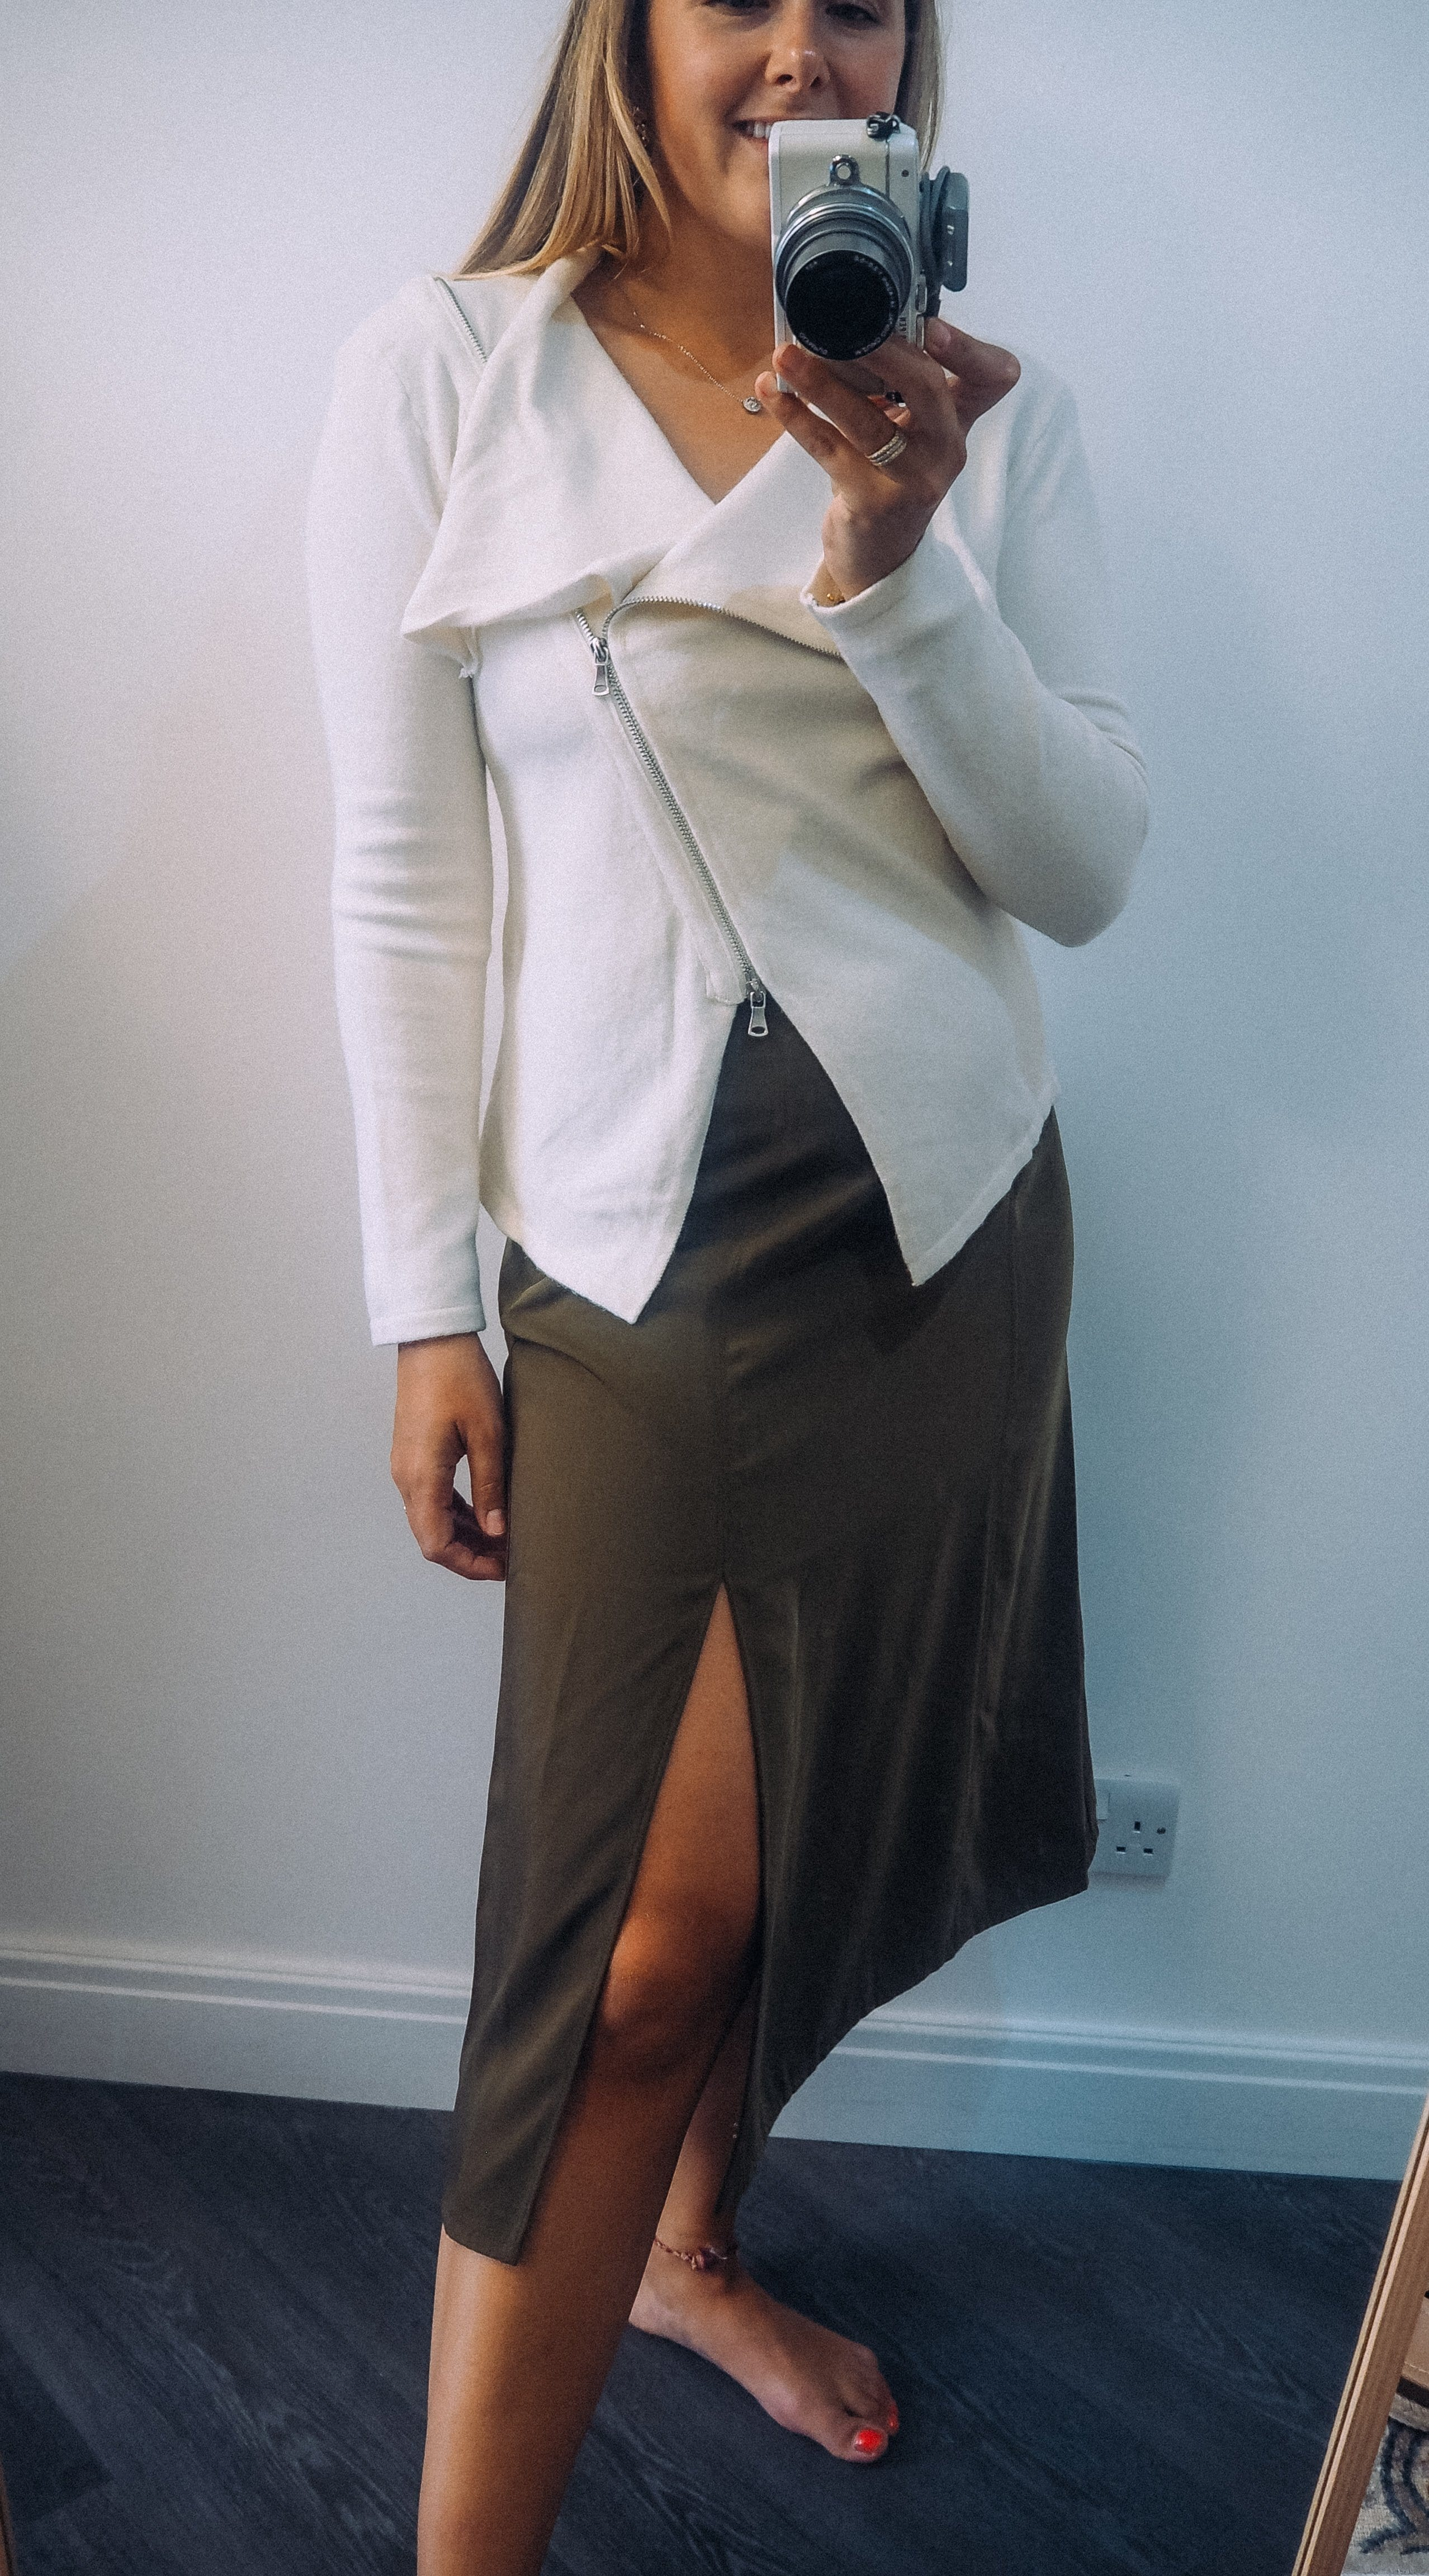 The Fia Olive skirt